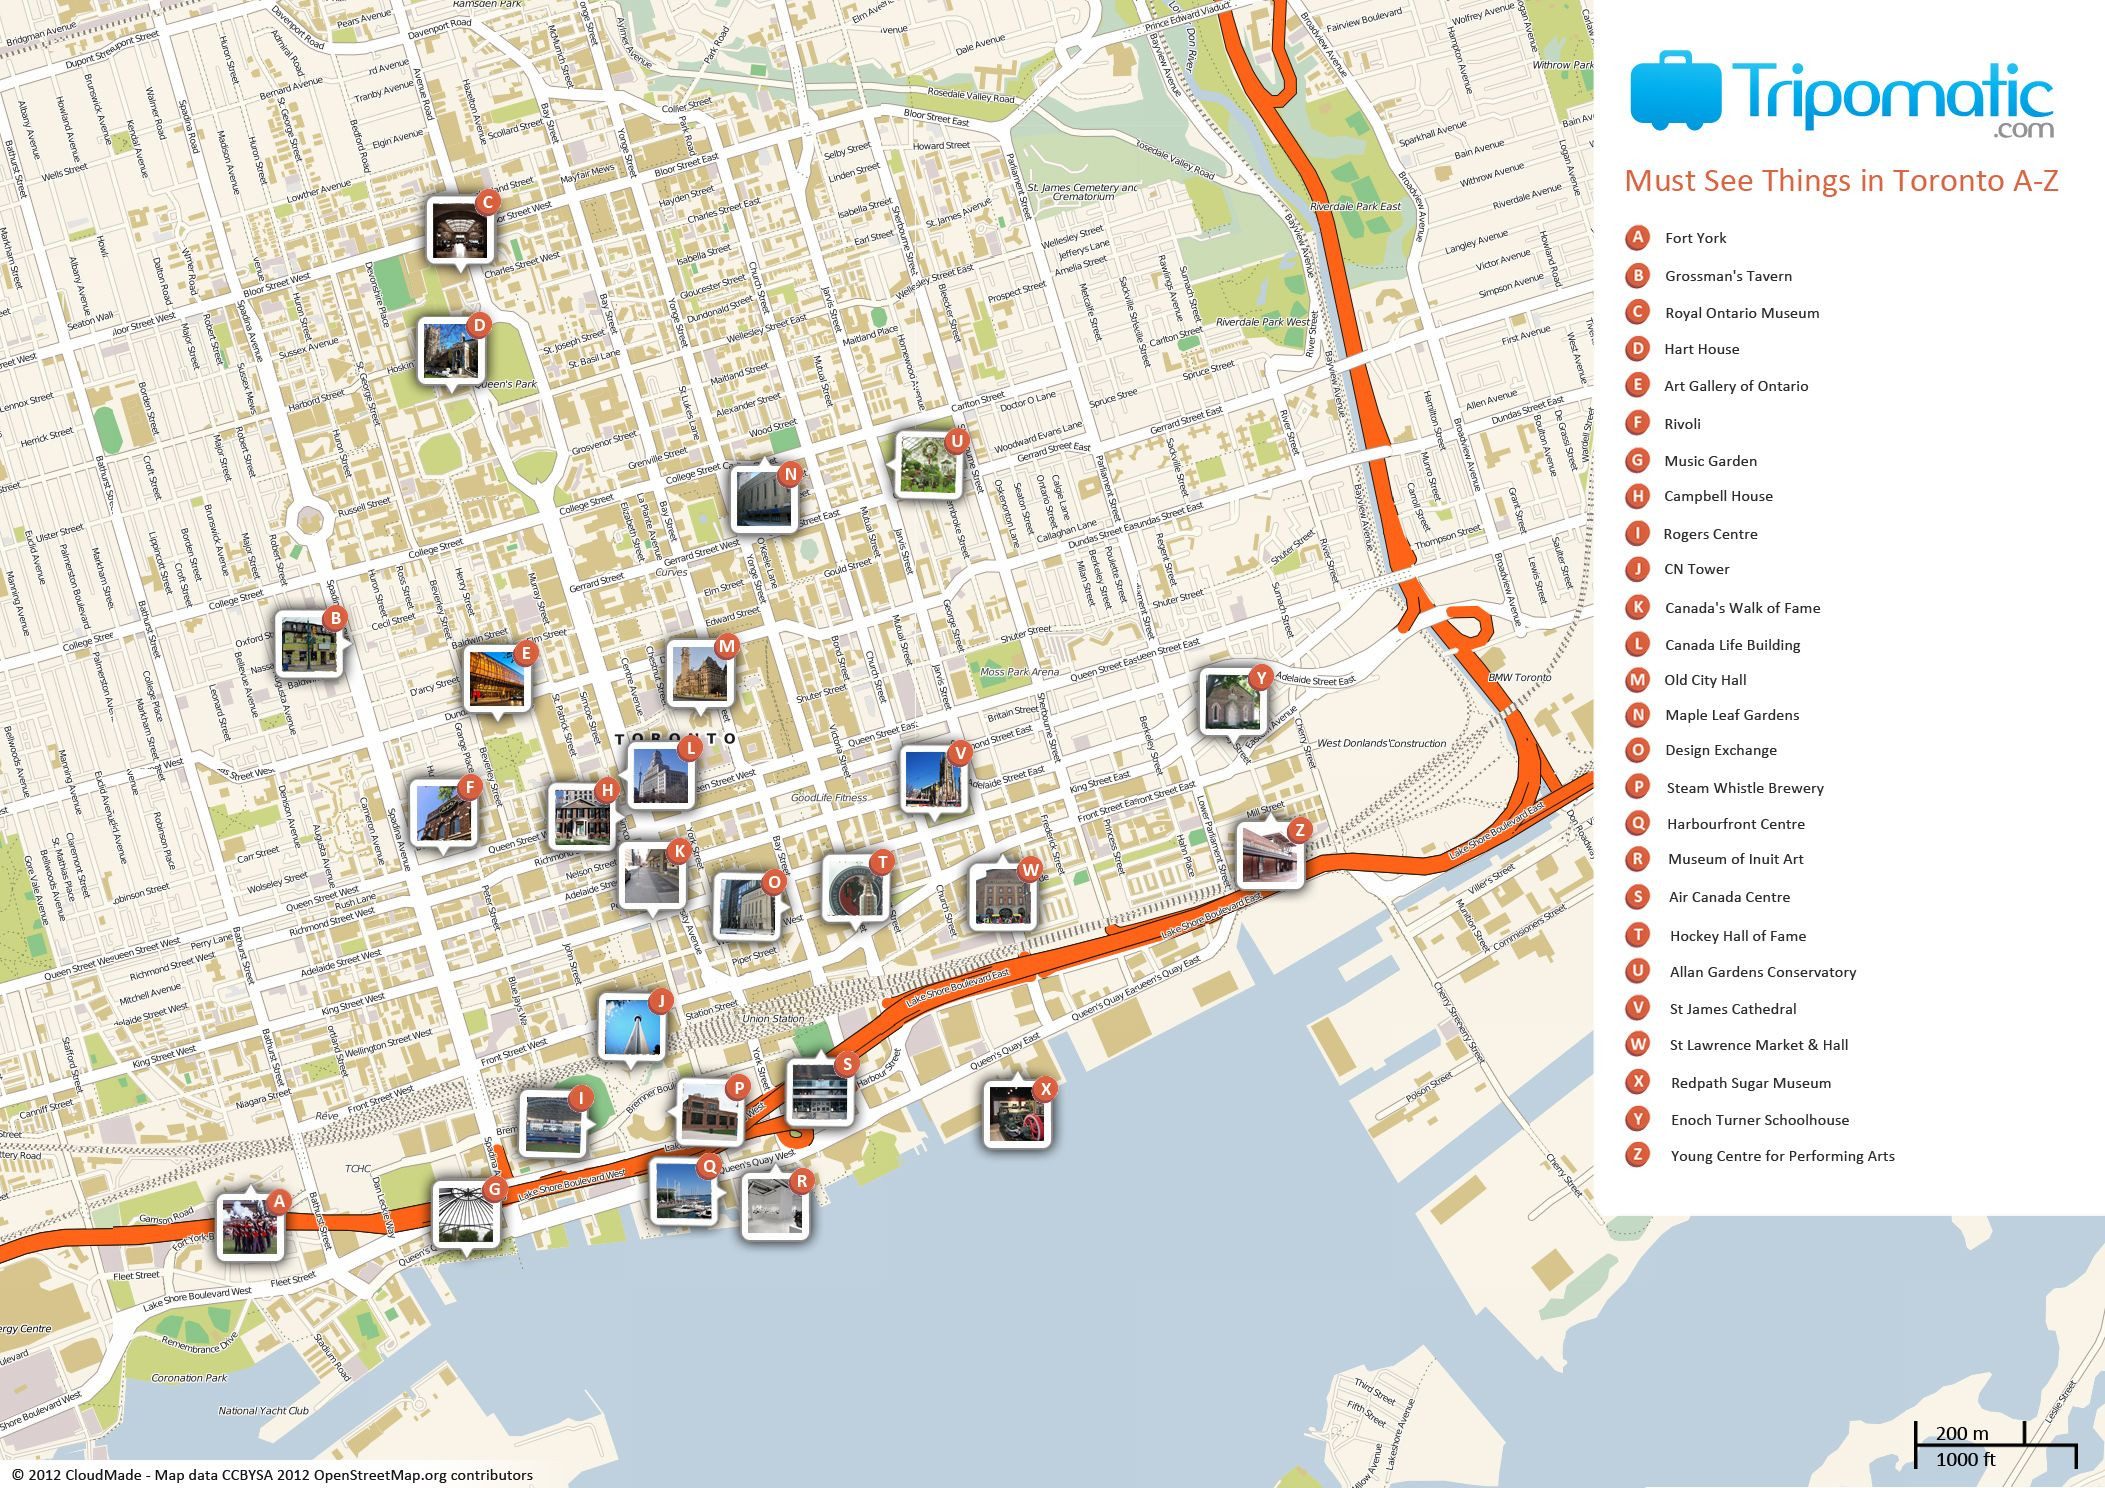 Printable Map 2017 Inspirational Toronto Printable Tourist Map Free Tourist Maps ✈